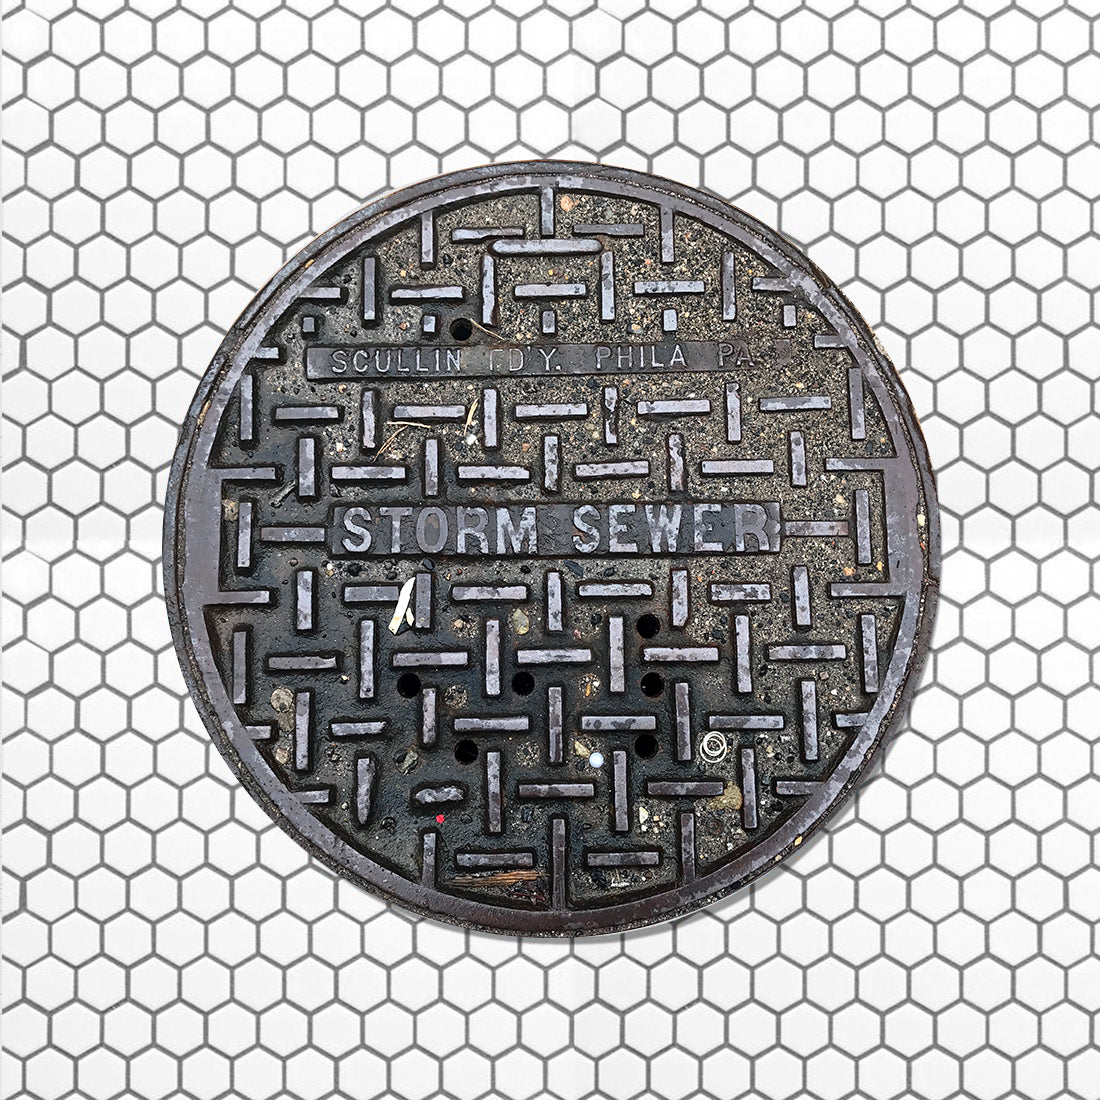 EAST SERIES - Sewer Cover Doormat, Trivet, Coaster - Philadelphia, PA